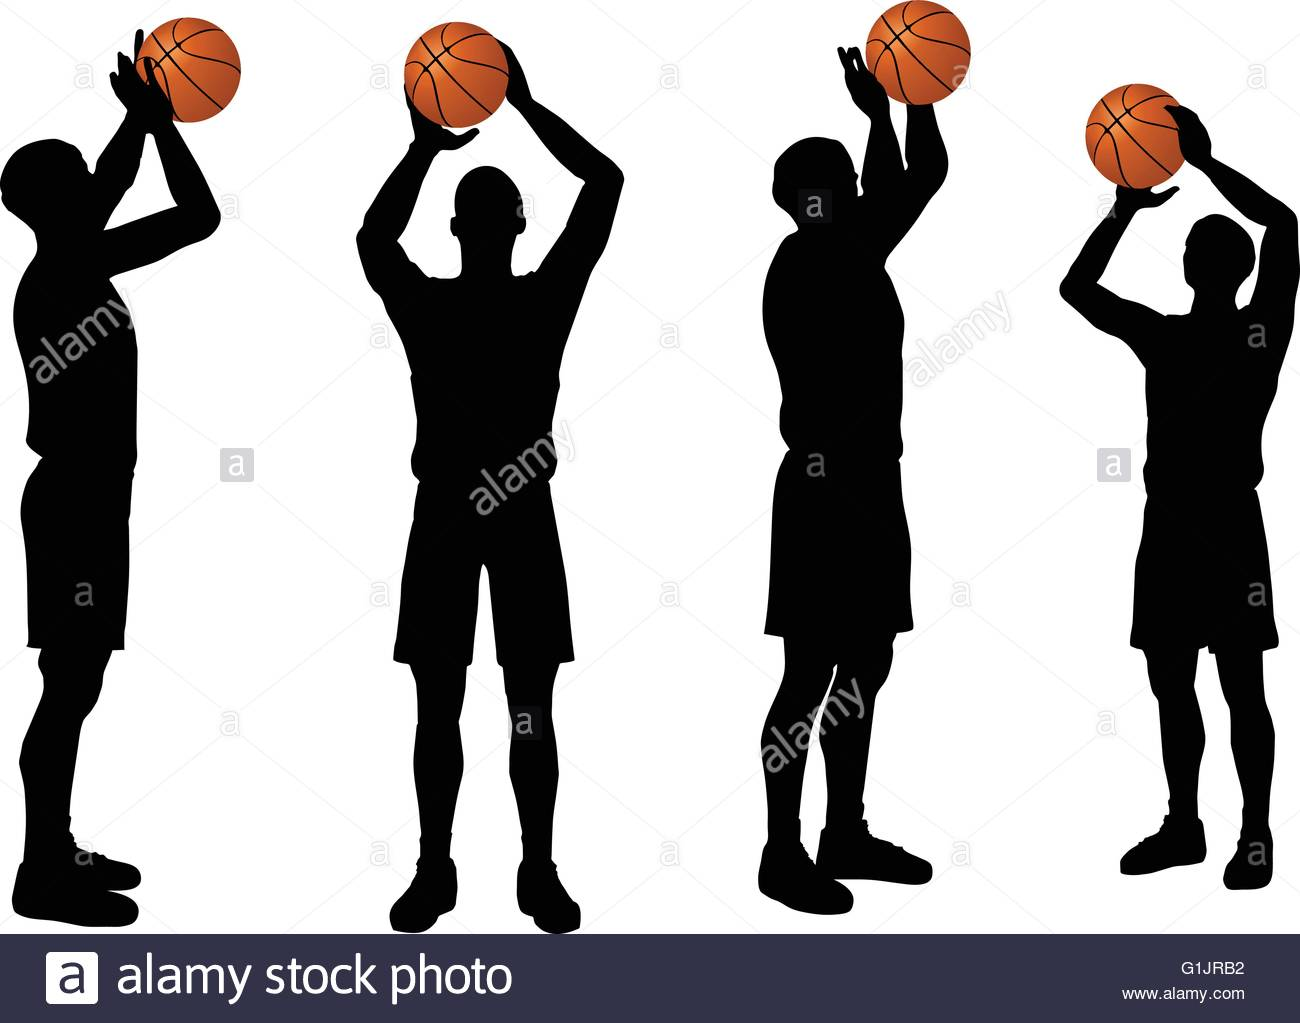 1300x1023 Eps 10 Vector Basketball Players Silhouette Collection In Free